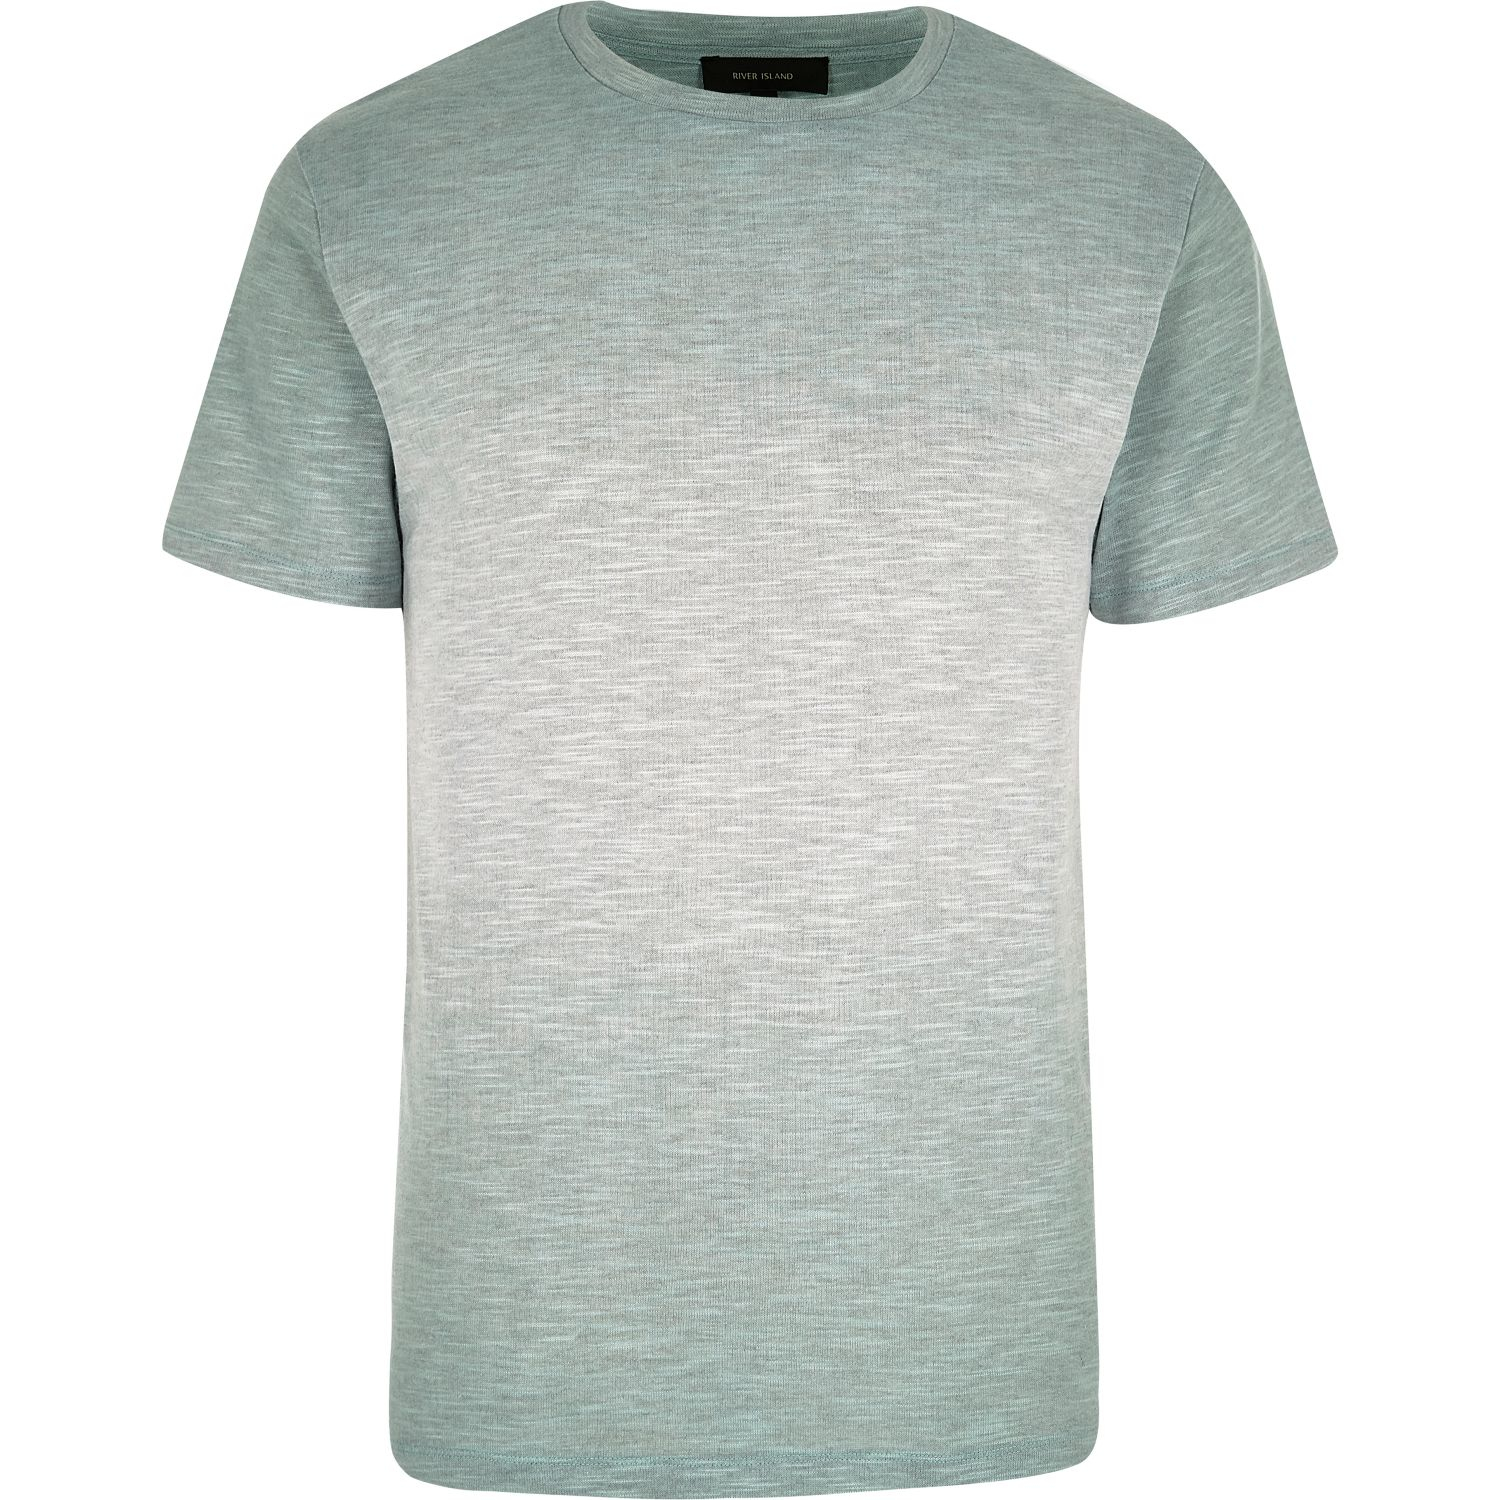 River island green faded texture t shirt in green for men for Faded color t shirts